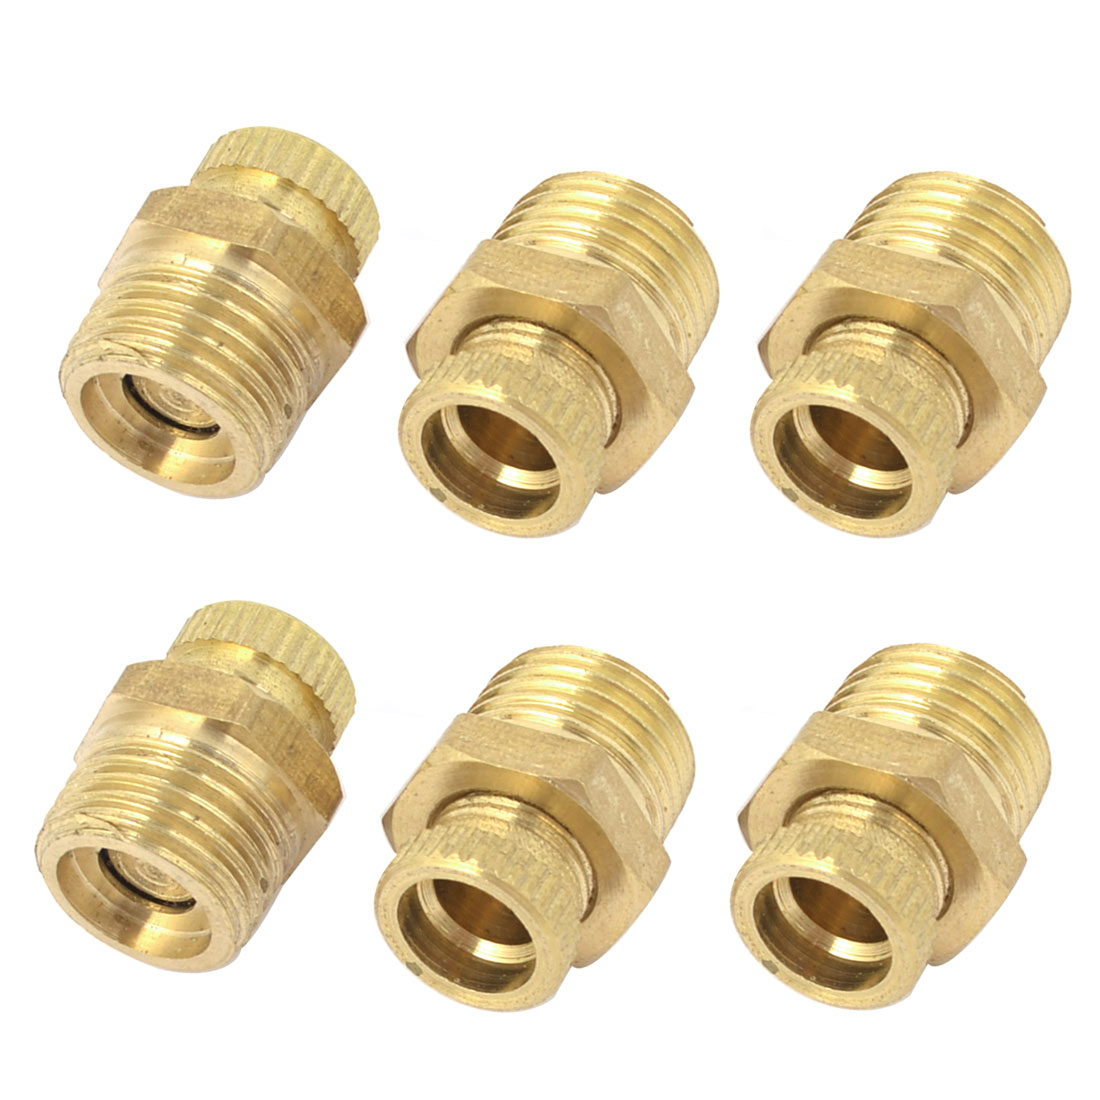 Air Compressor 1/4PT Male Thread Water Drain Valve Gold Tone 6 PCS